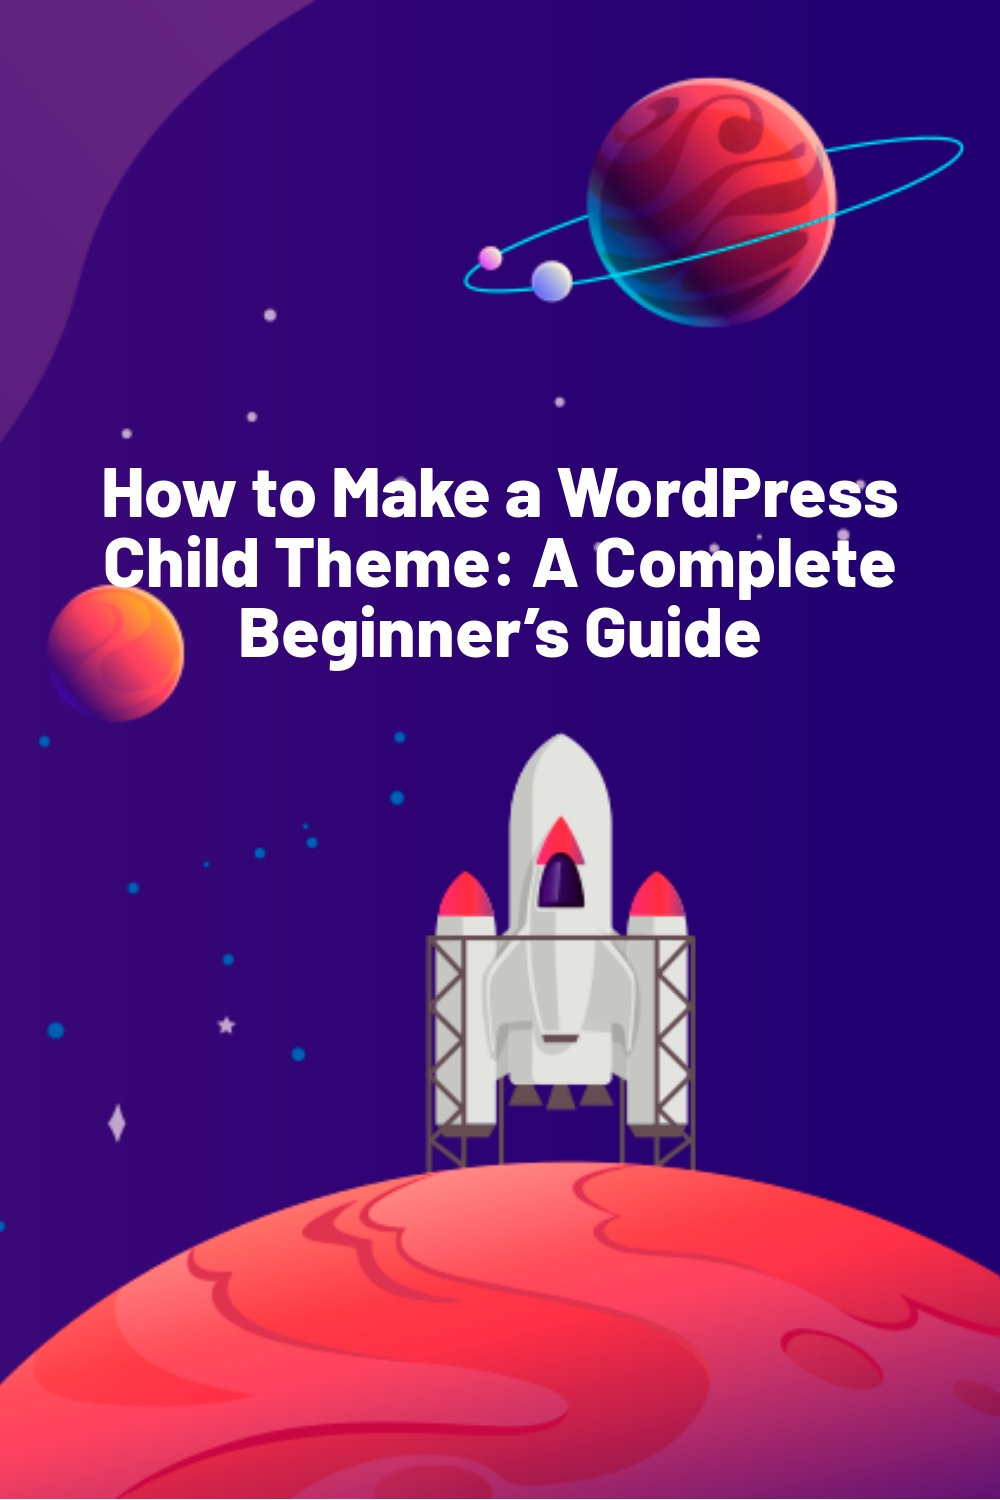 How to Make a WordPress Child Theme: A Complete Beginner's Guide